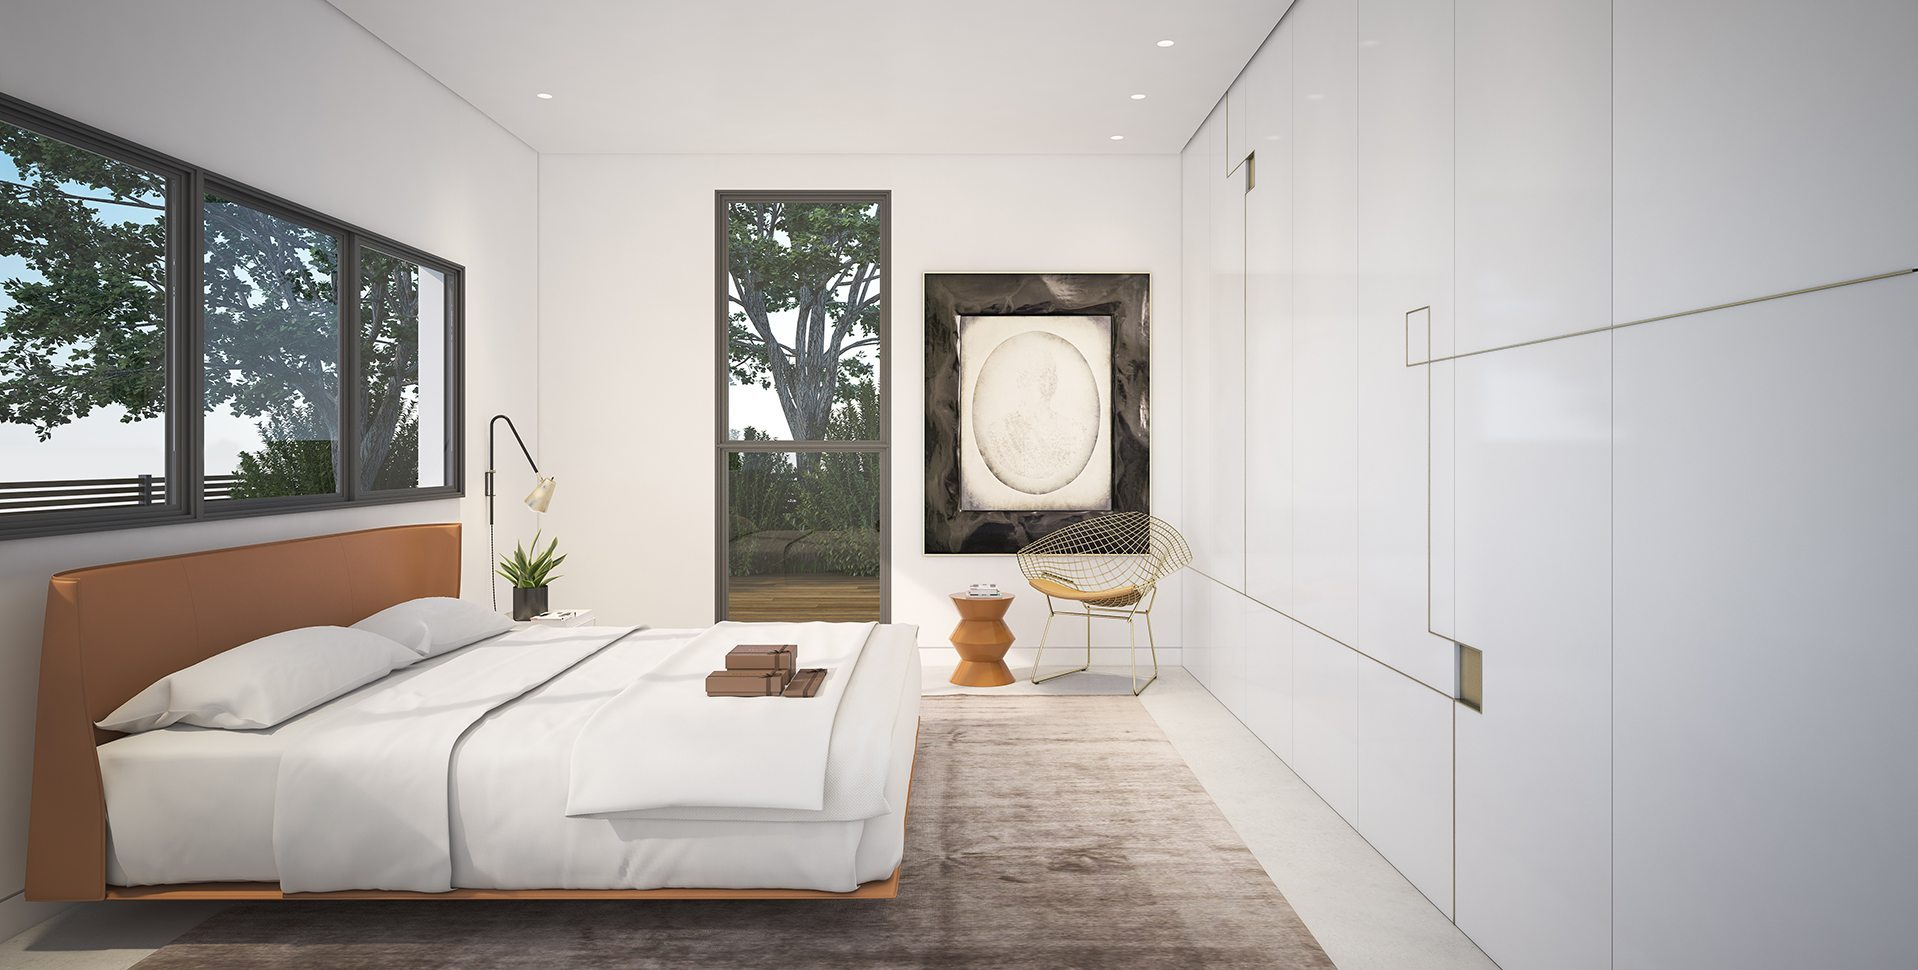 Architectural Visualization: Bedroom, Hardof Project by El-Yam